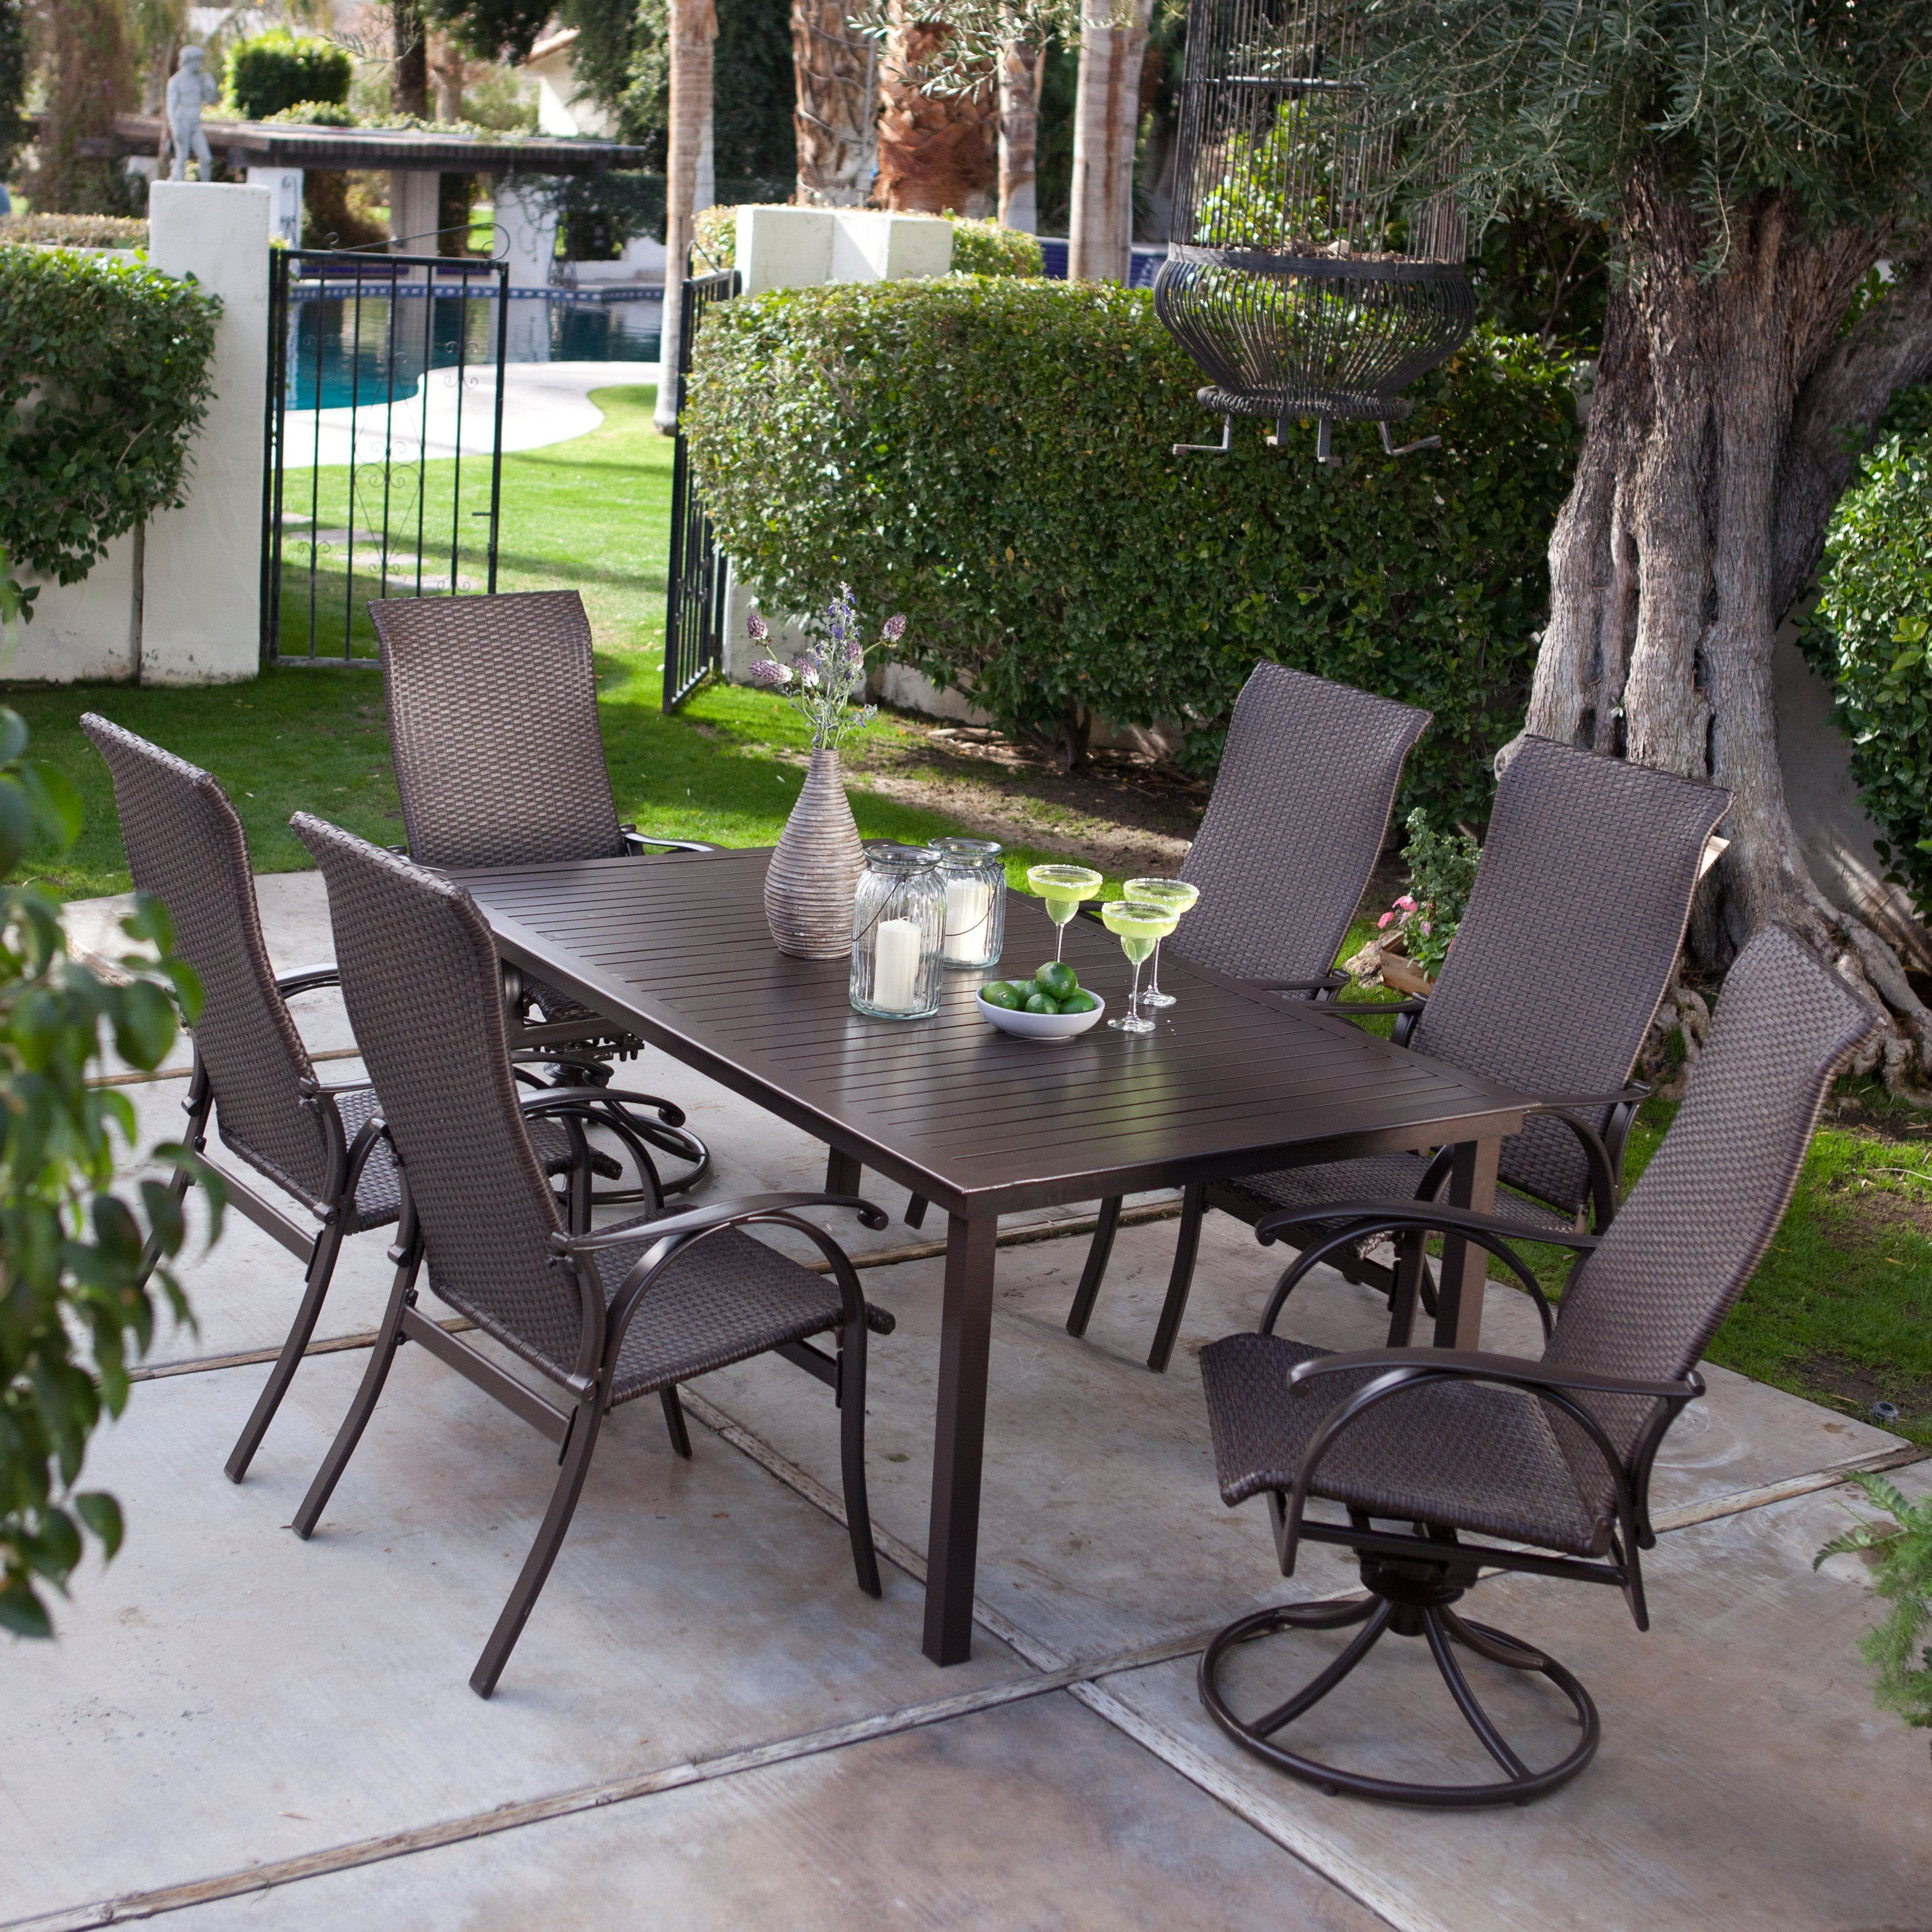 Coral Coast Bellagio Wicker Patio Dining Set   Seats 6   $1399.98 @hayneedle